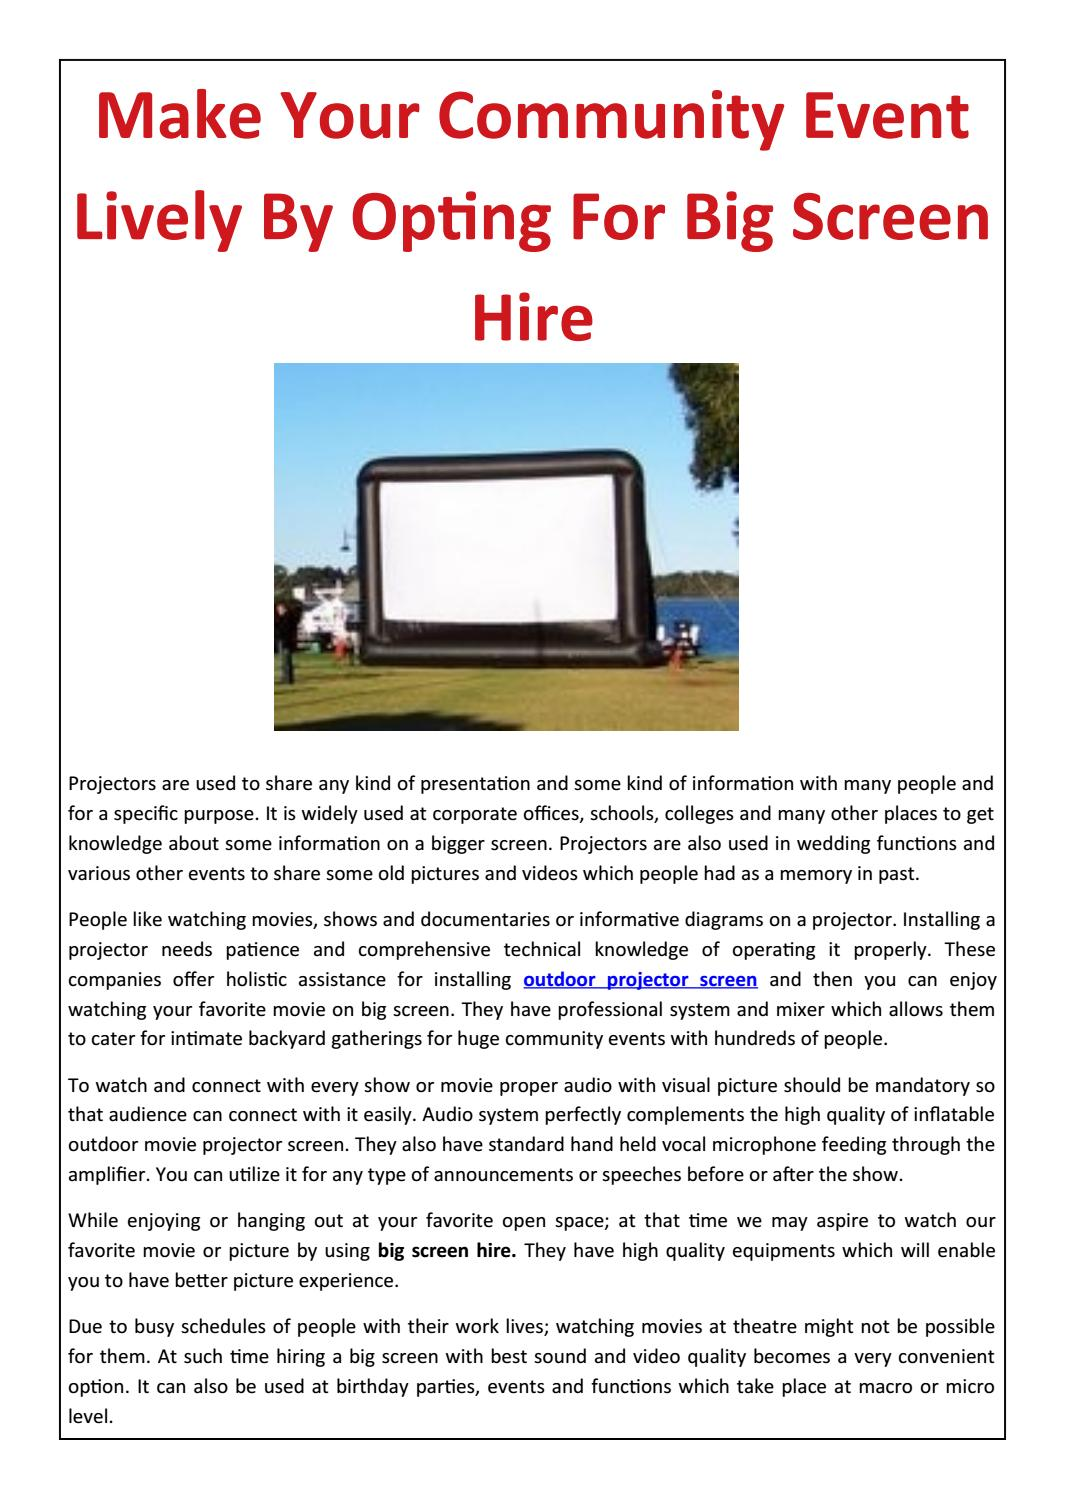 Make Your Community Event Lively By Opting For Big Screen